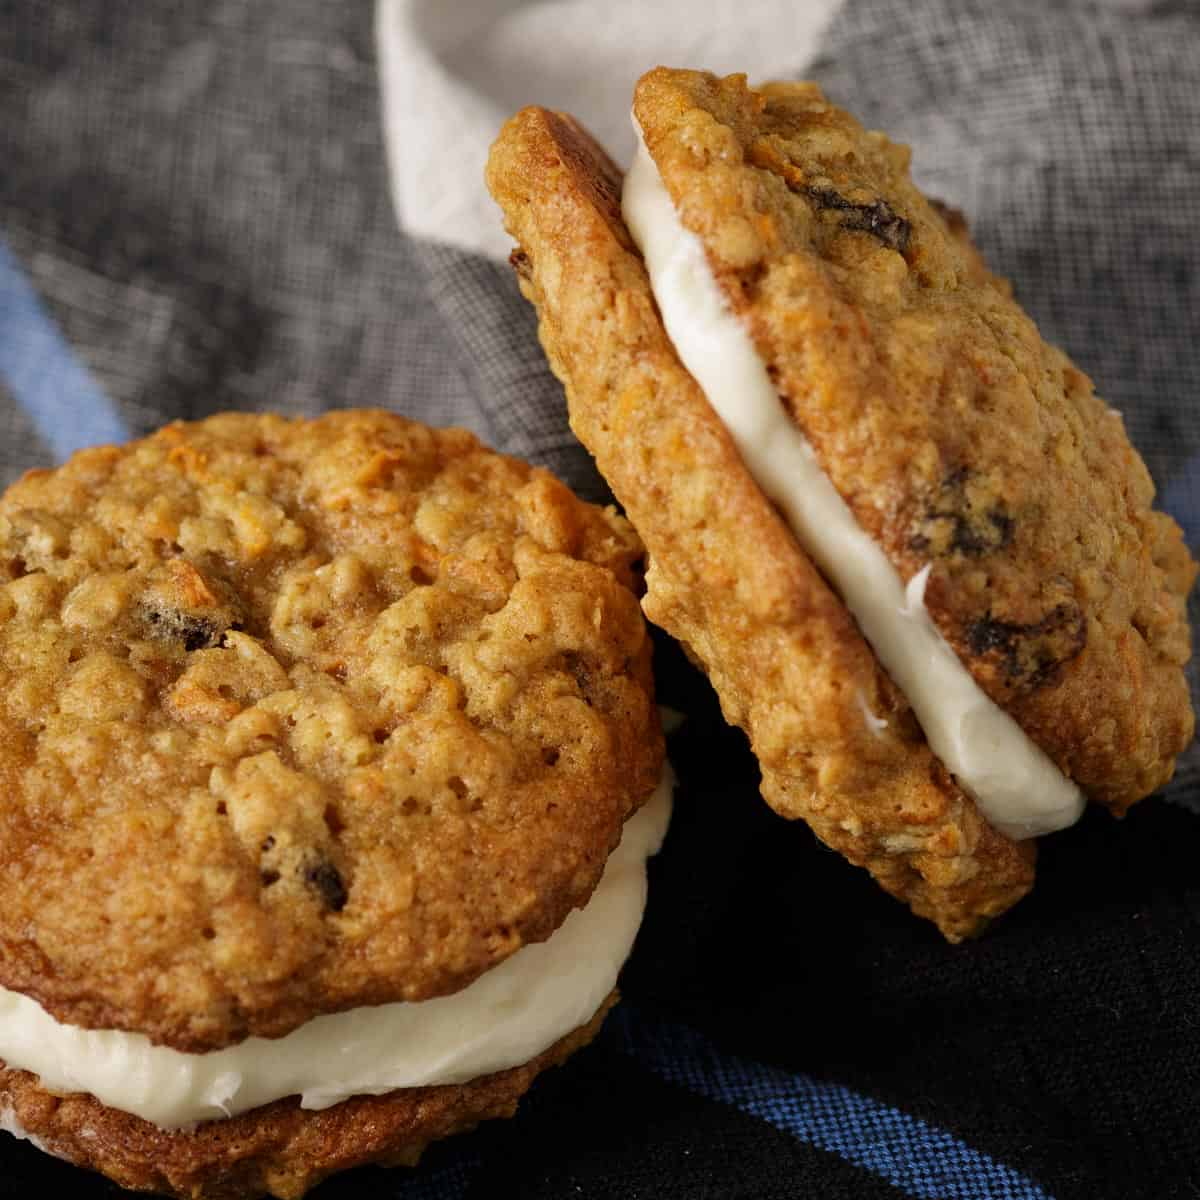 Two carrot cake sandwich cookies propped up and laying on a napkin